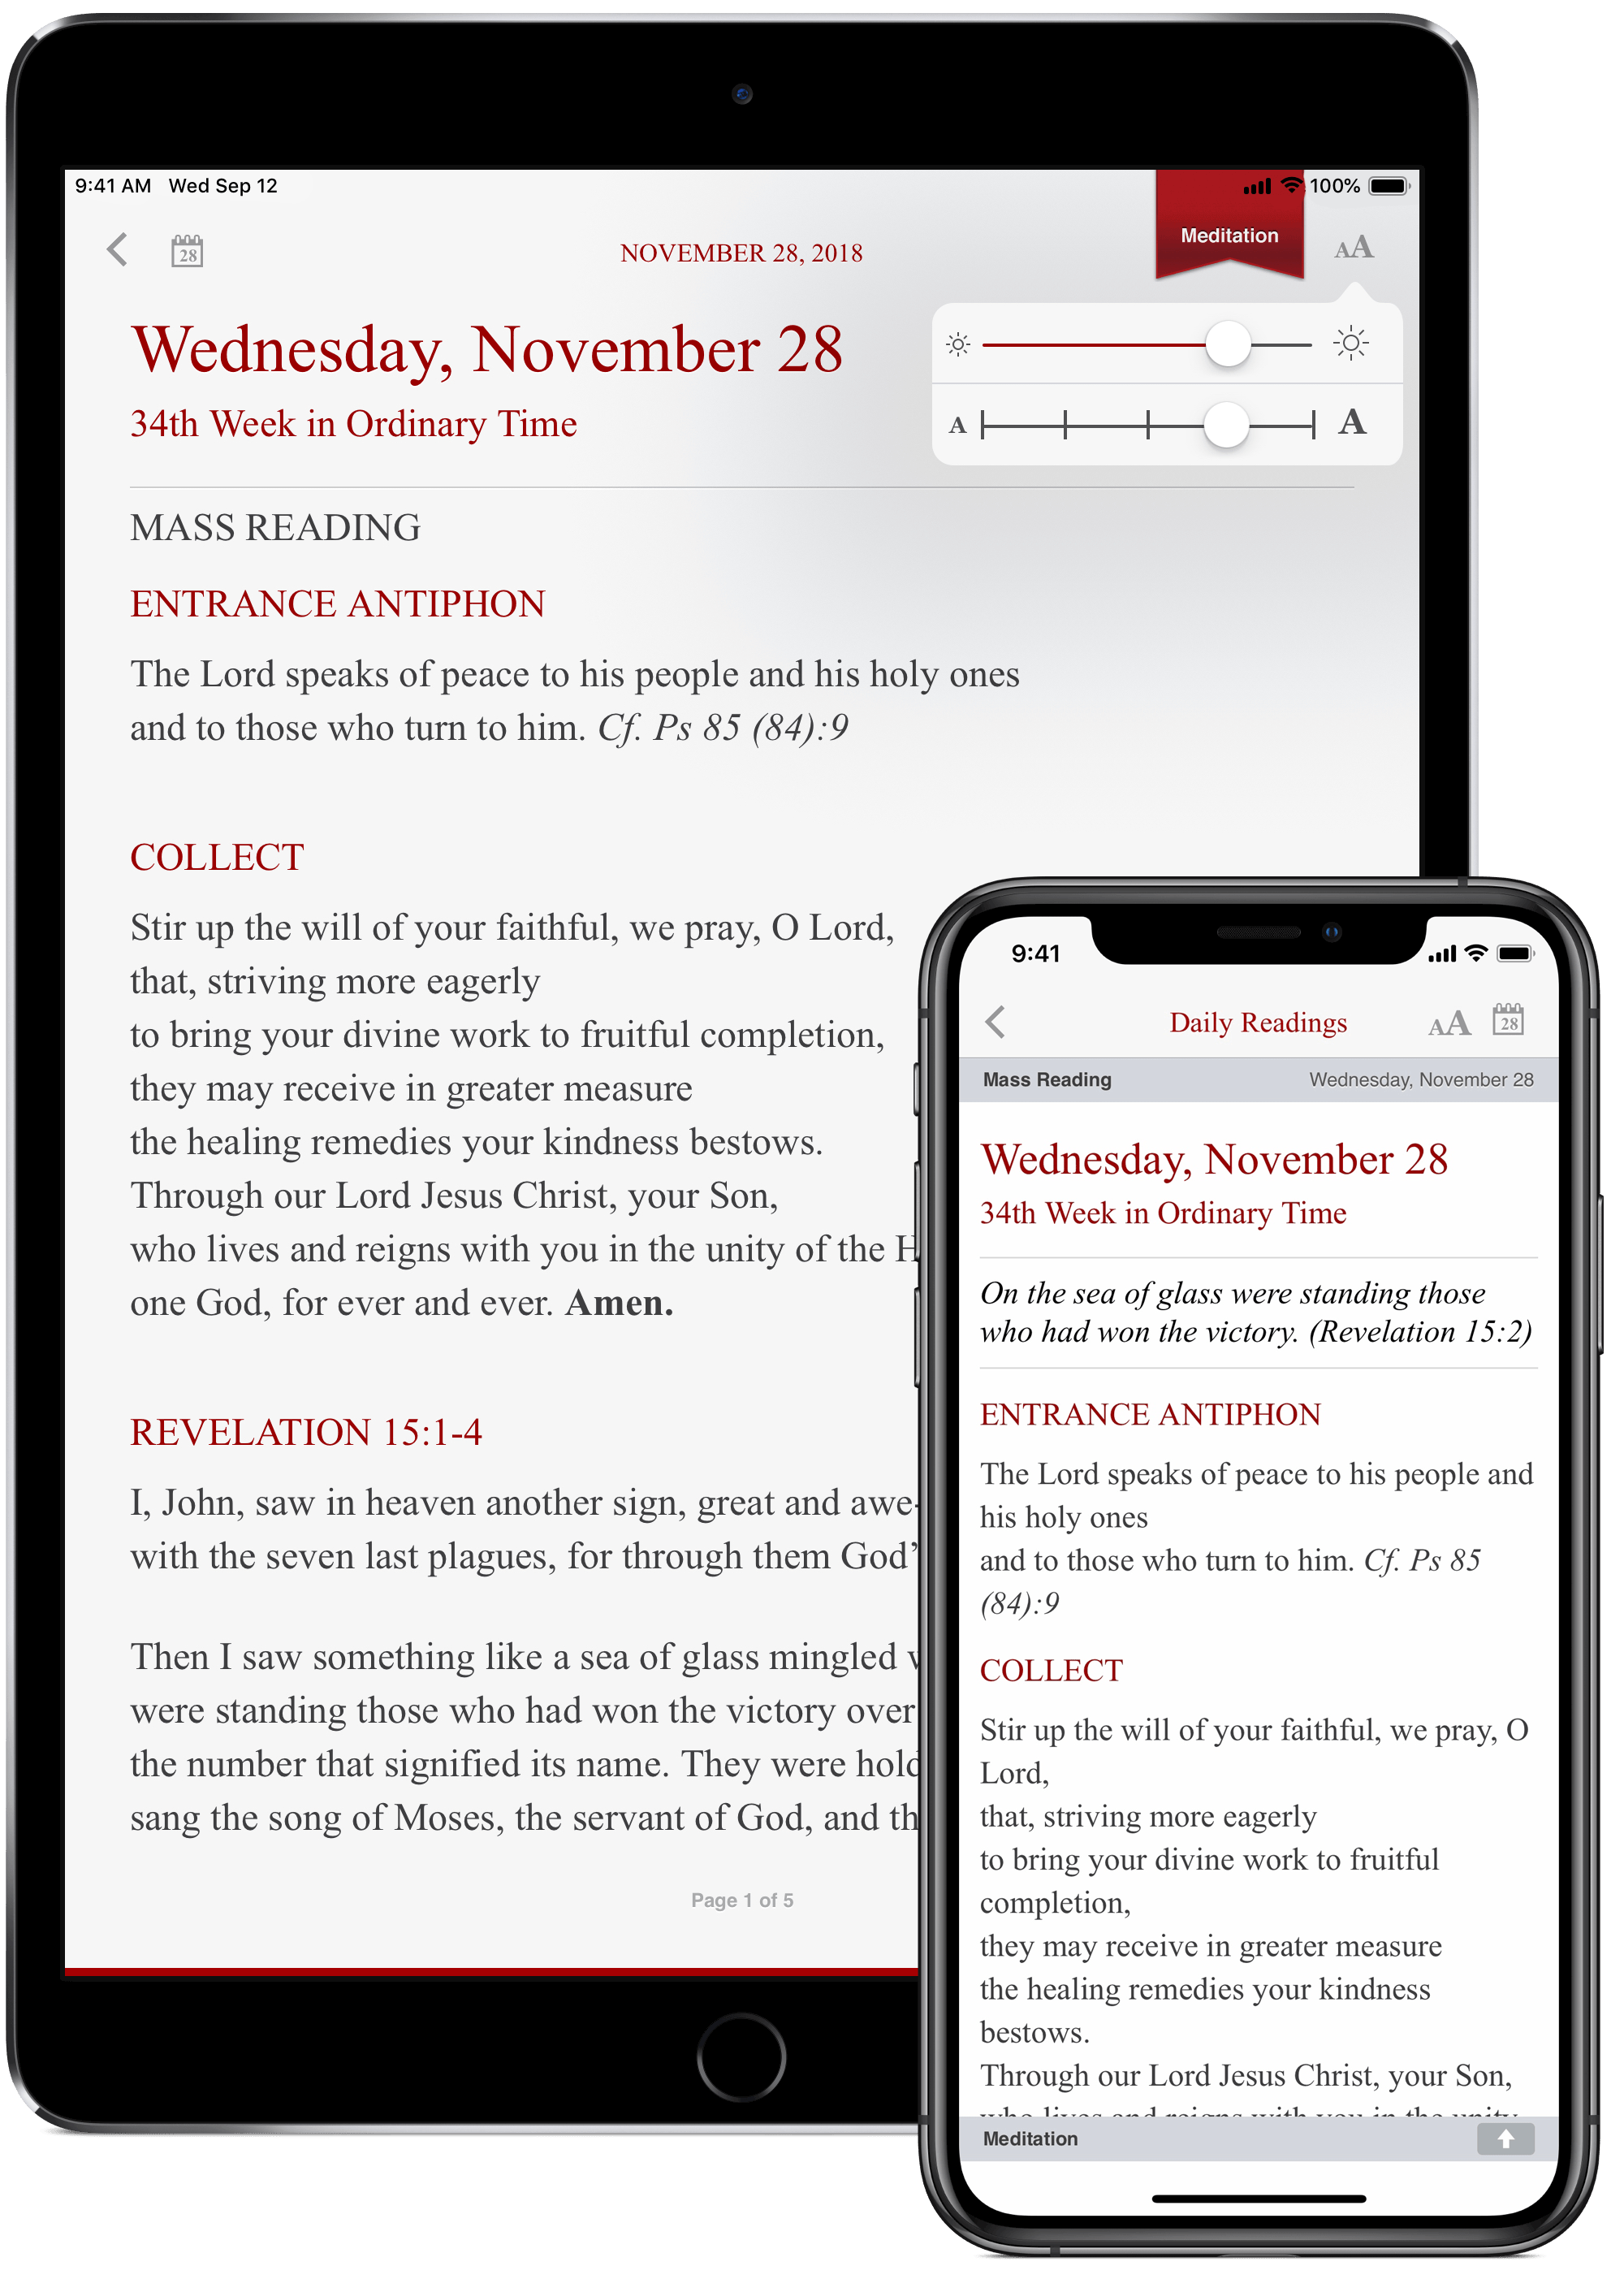 The Word Among Us App - Daily Mass Readings Screen